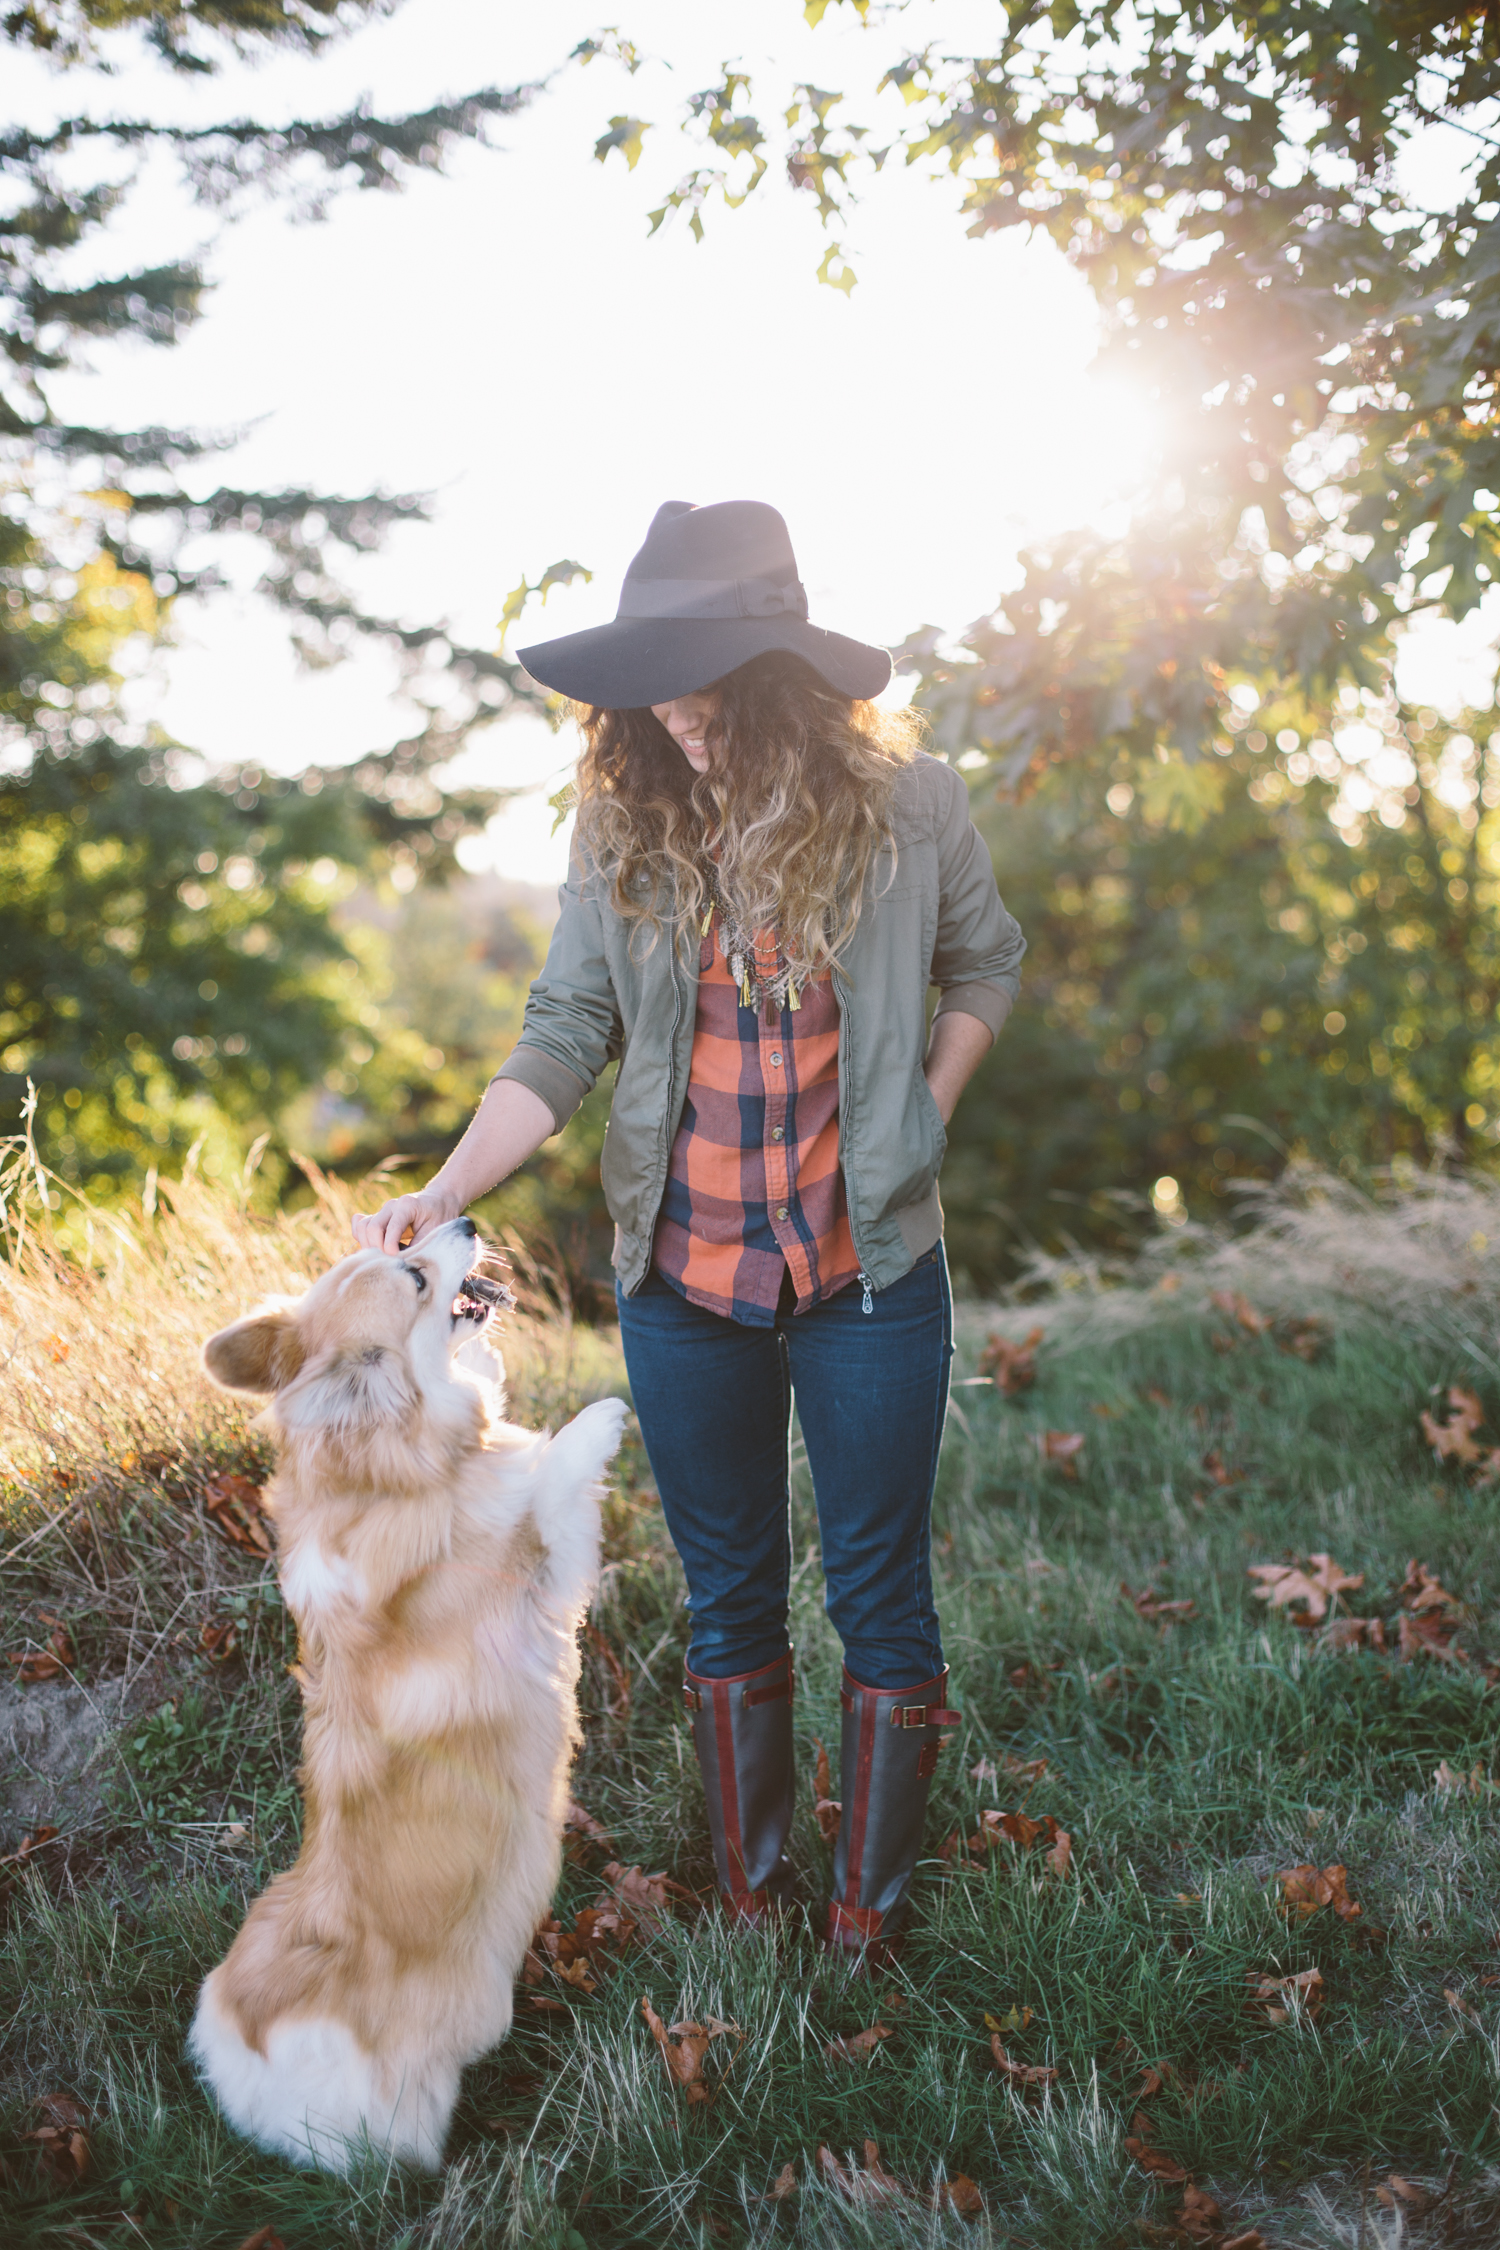 Pacific Northwest Fall Outfit | Liz Morrow Studios